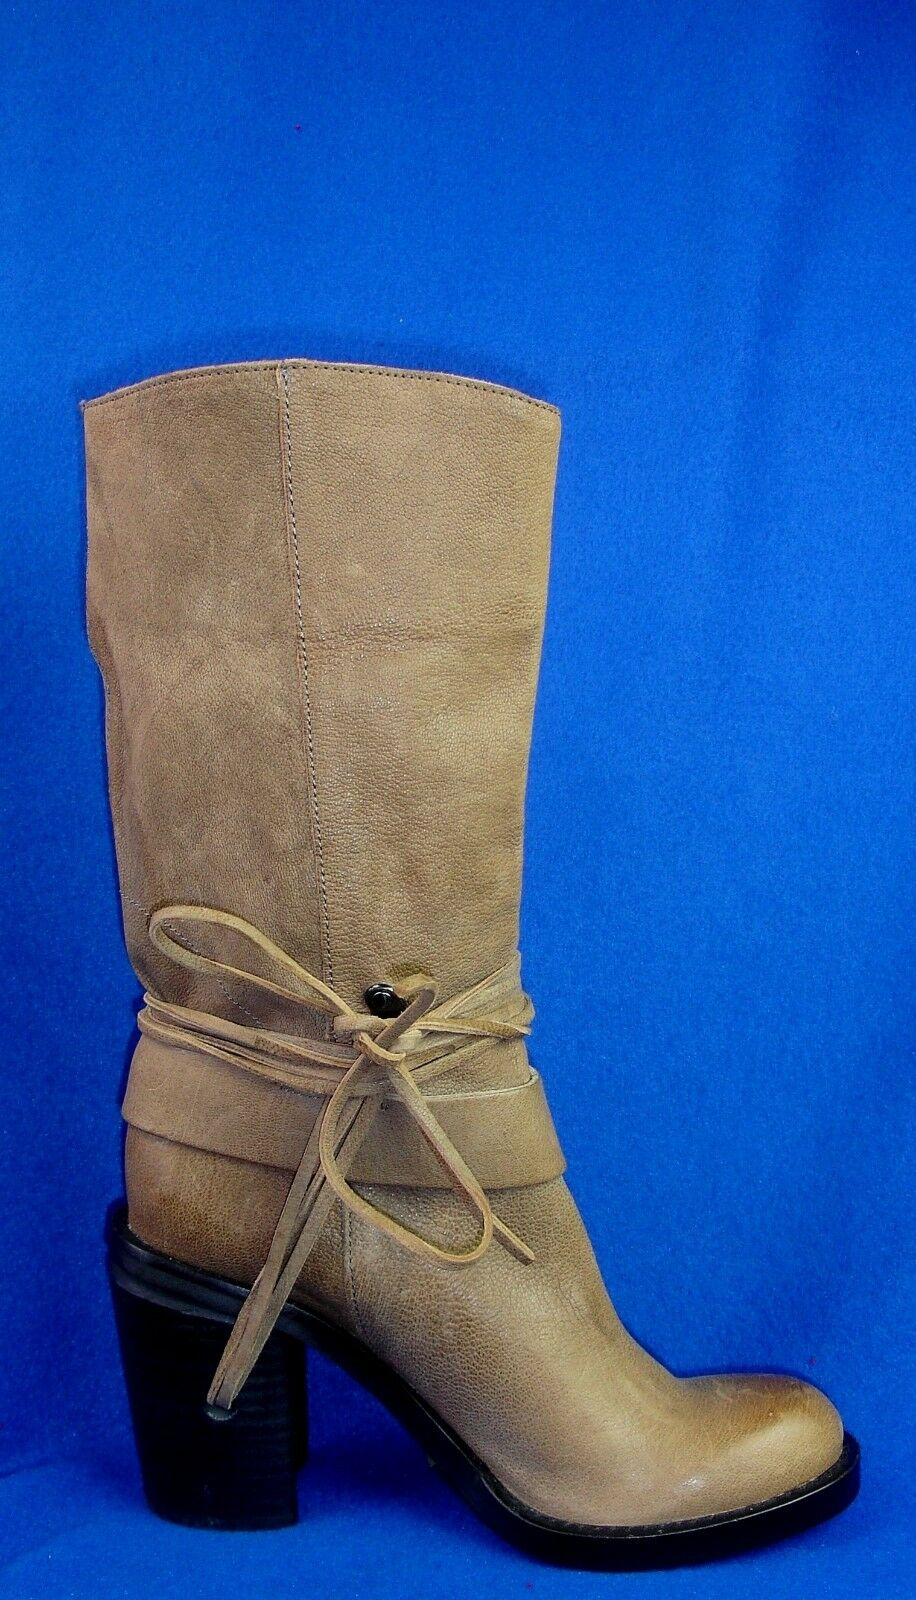 Vince Camuto Camuto Camuto damen Leather Taupe Stiefel SZ 6.5 Free Shipping 5be88e